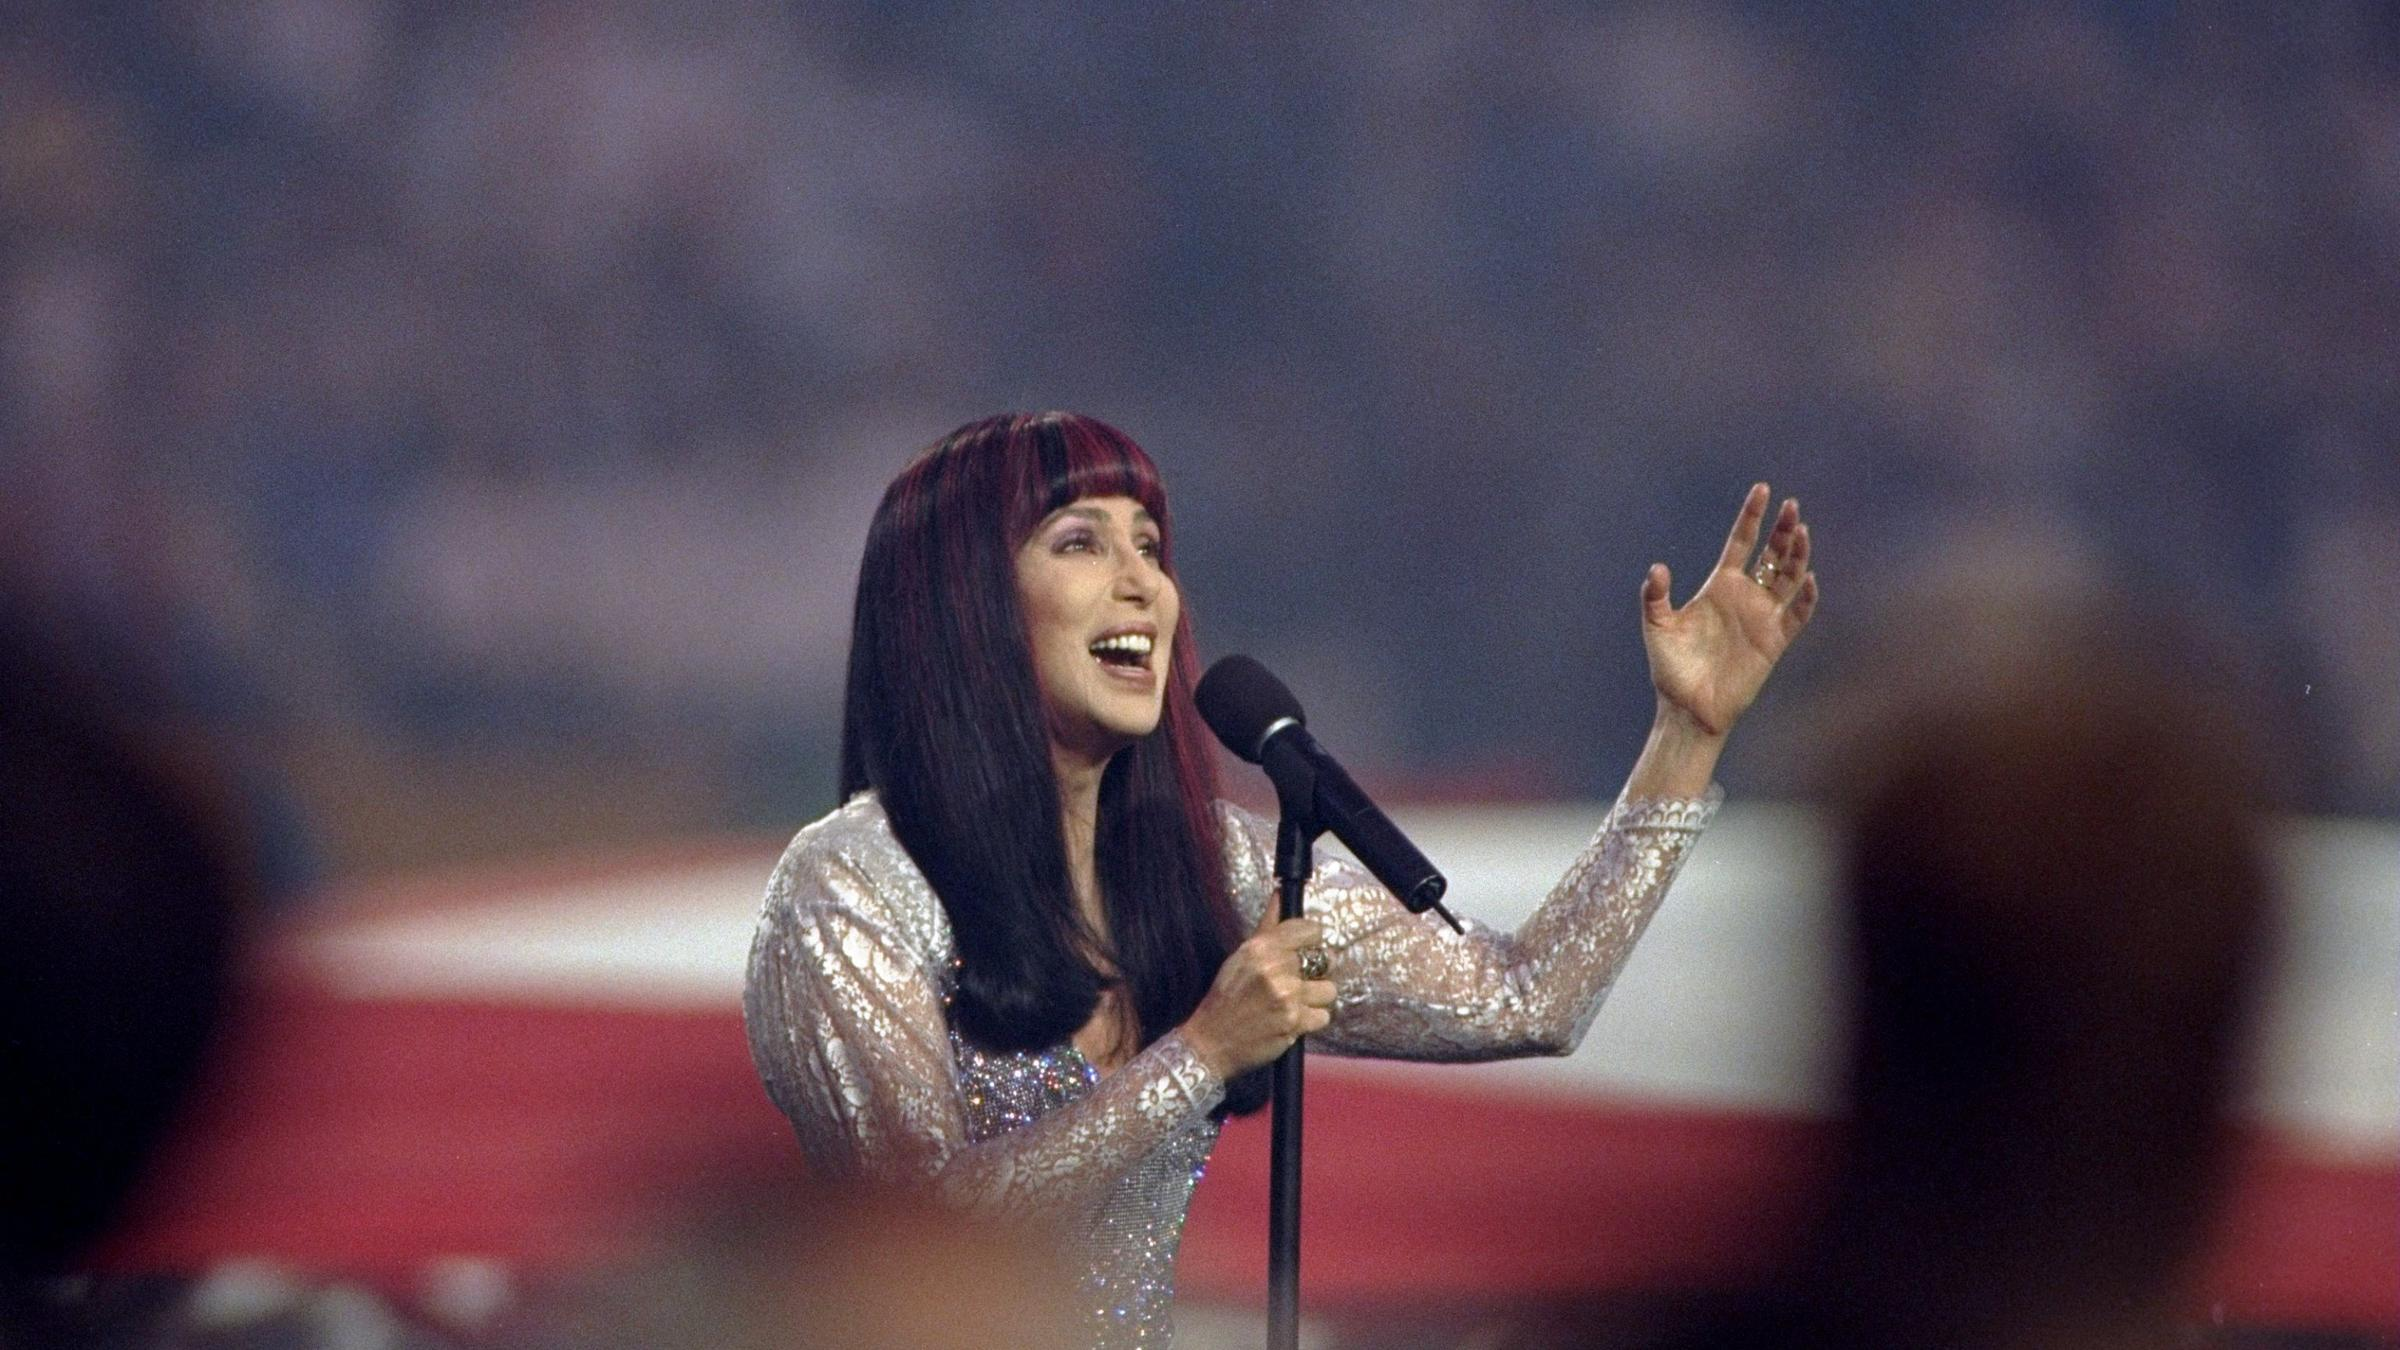 20 Years Of Cher's 'Believe' And Its Auto-Tune Legacy | KRCC